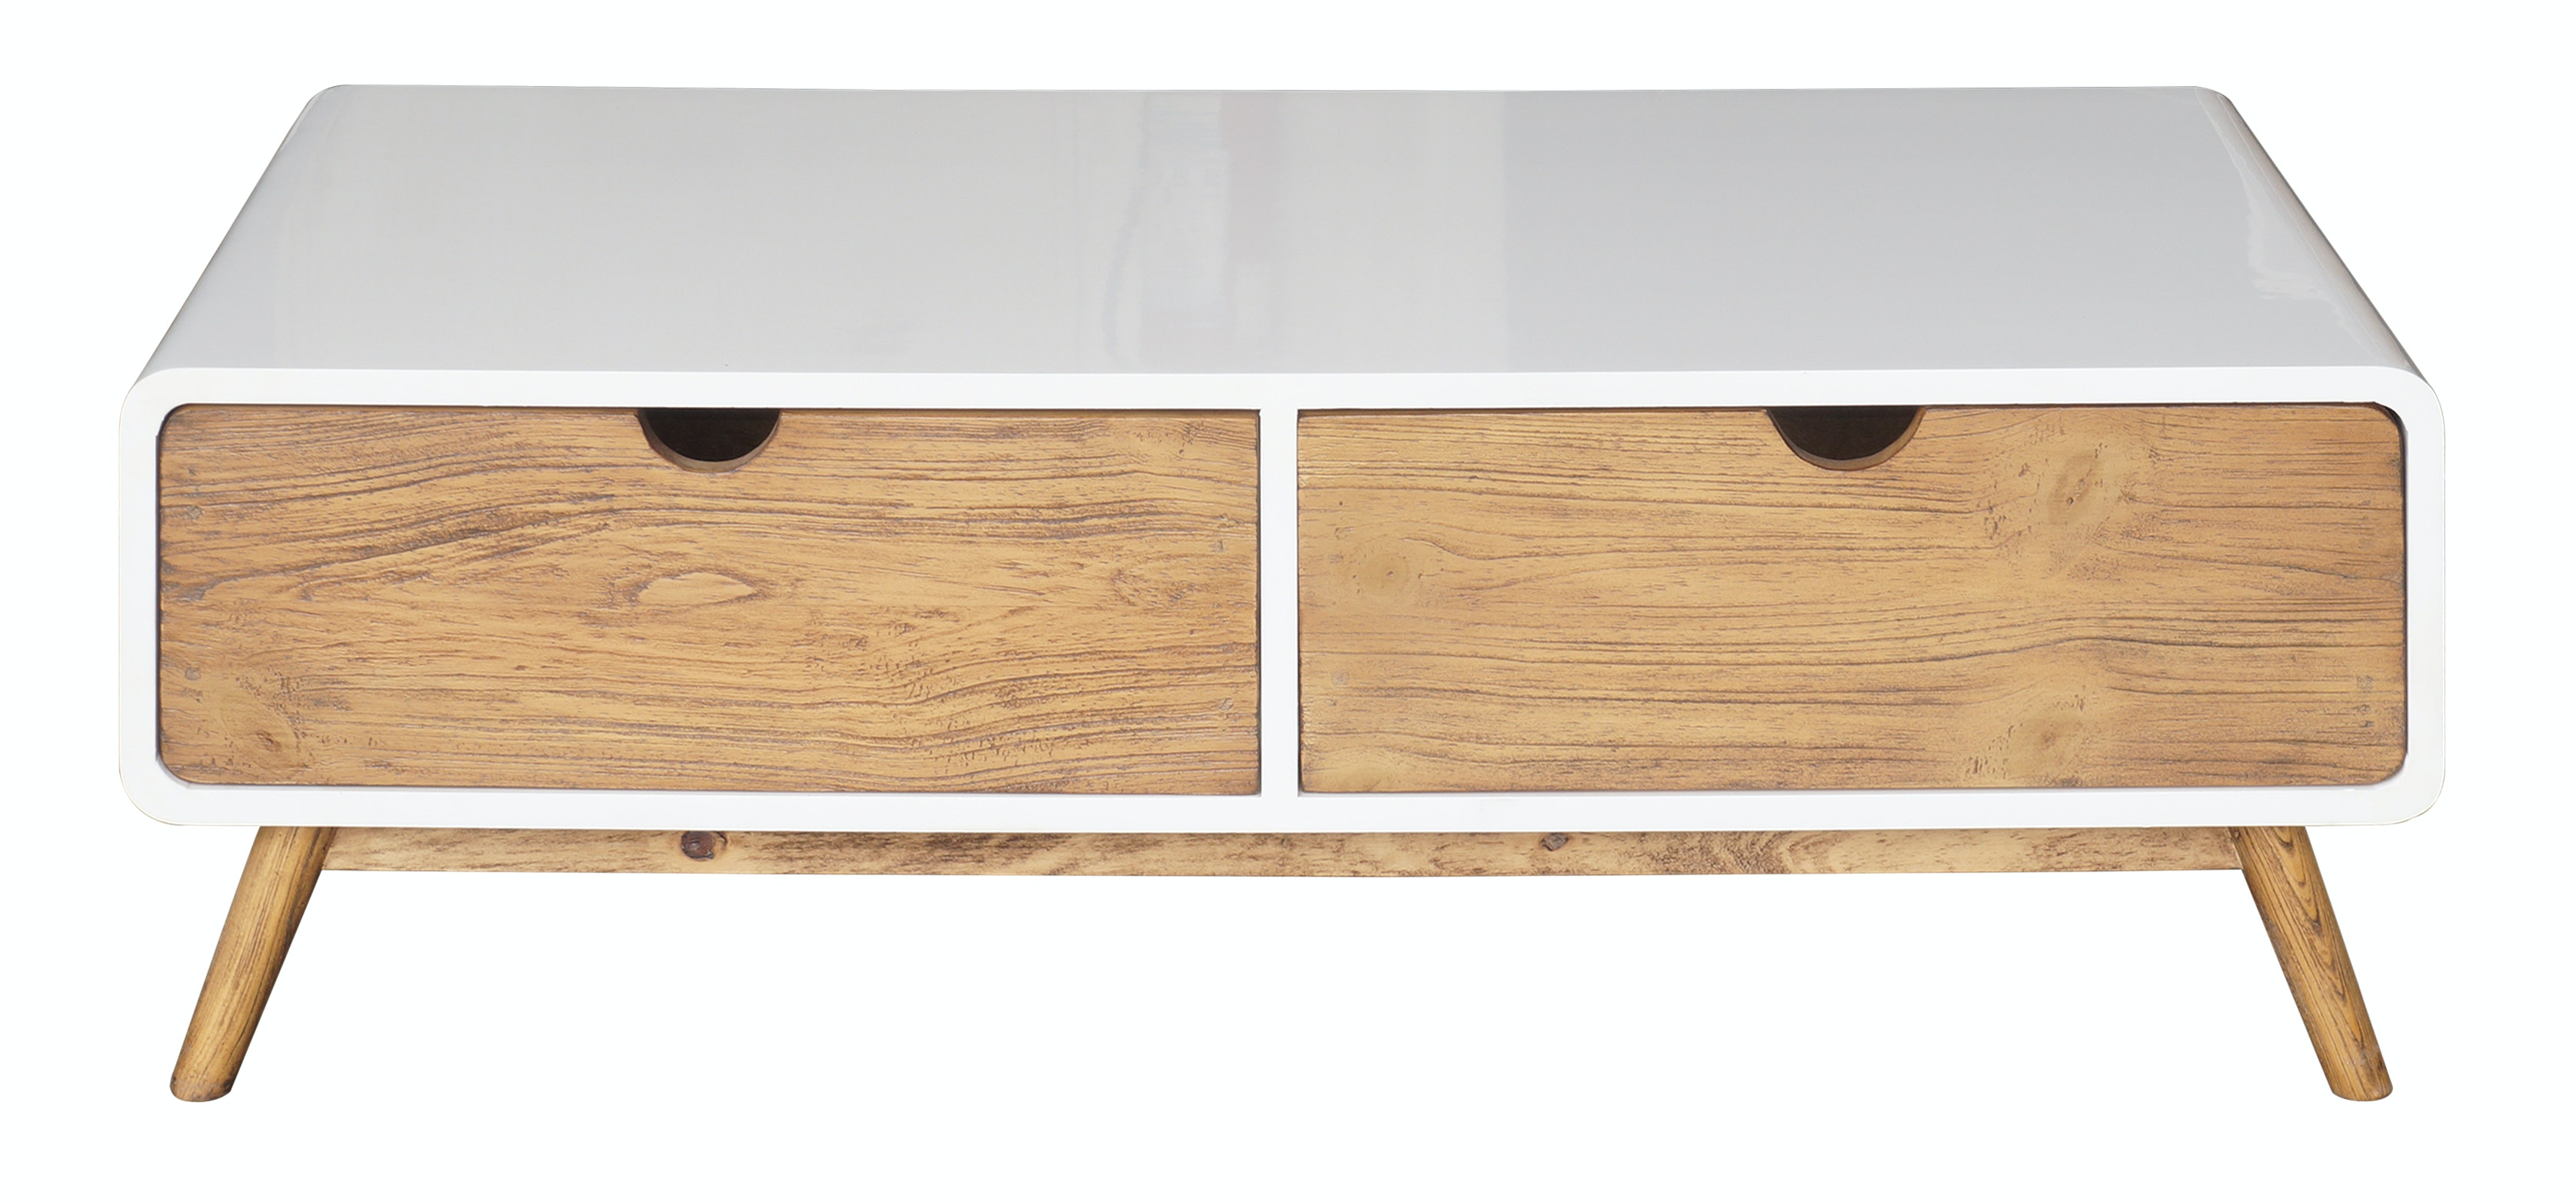 Alegre Kino Coffee Table